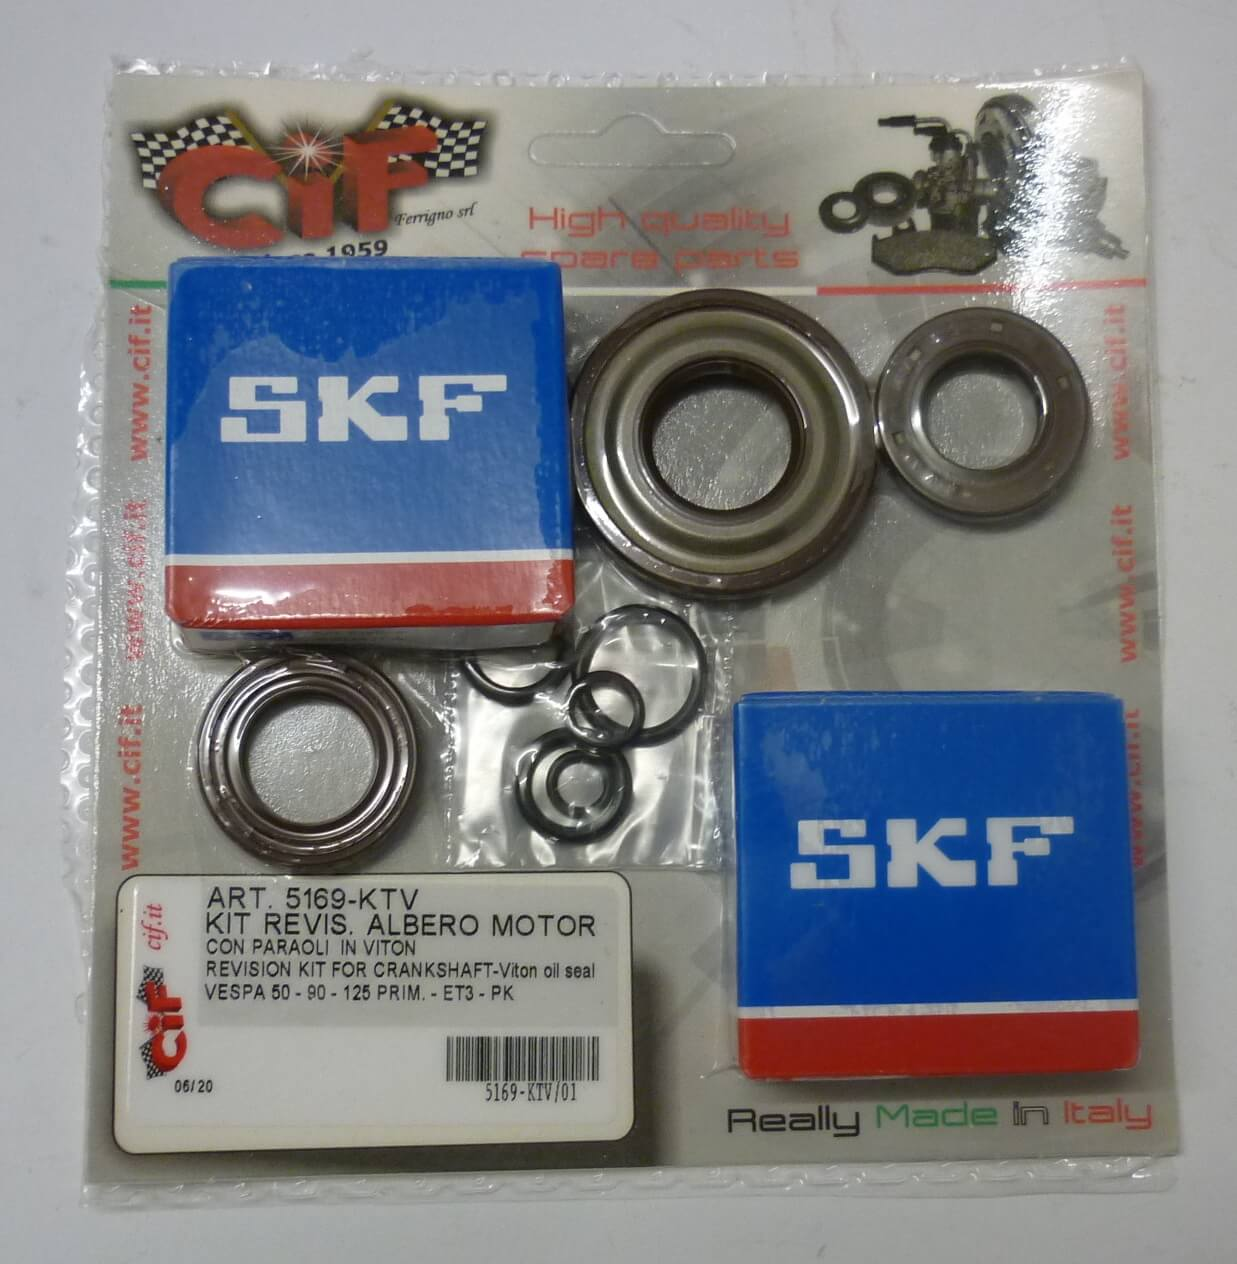 Kit crankshaft revision kit, VITON, Vespa 50 - 125 Primavera - ET3 - PK - PK XL - FL